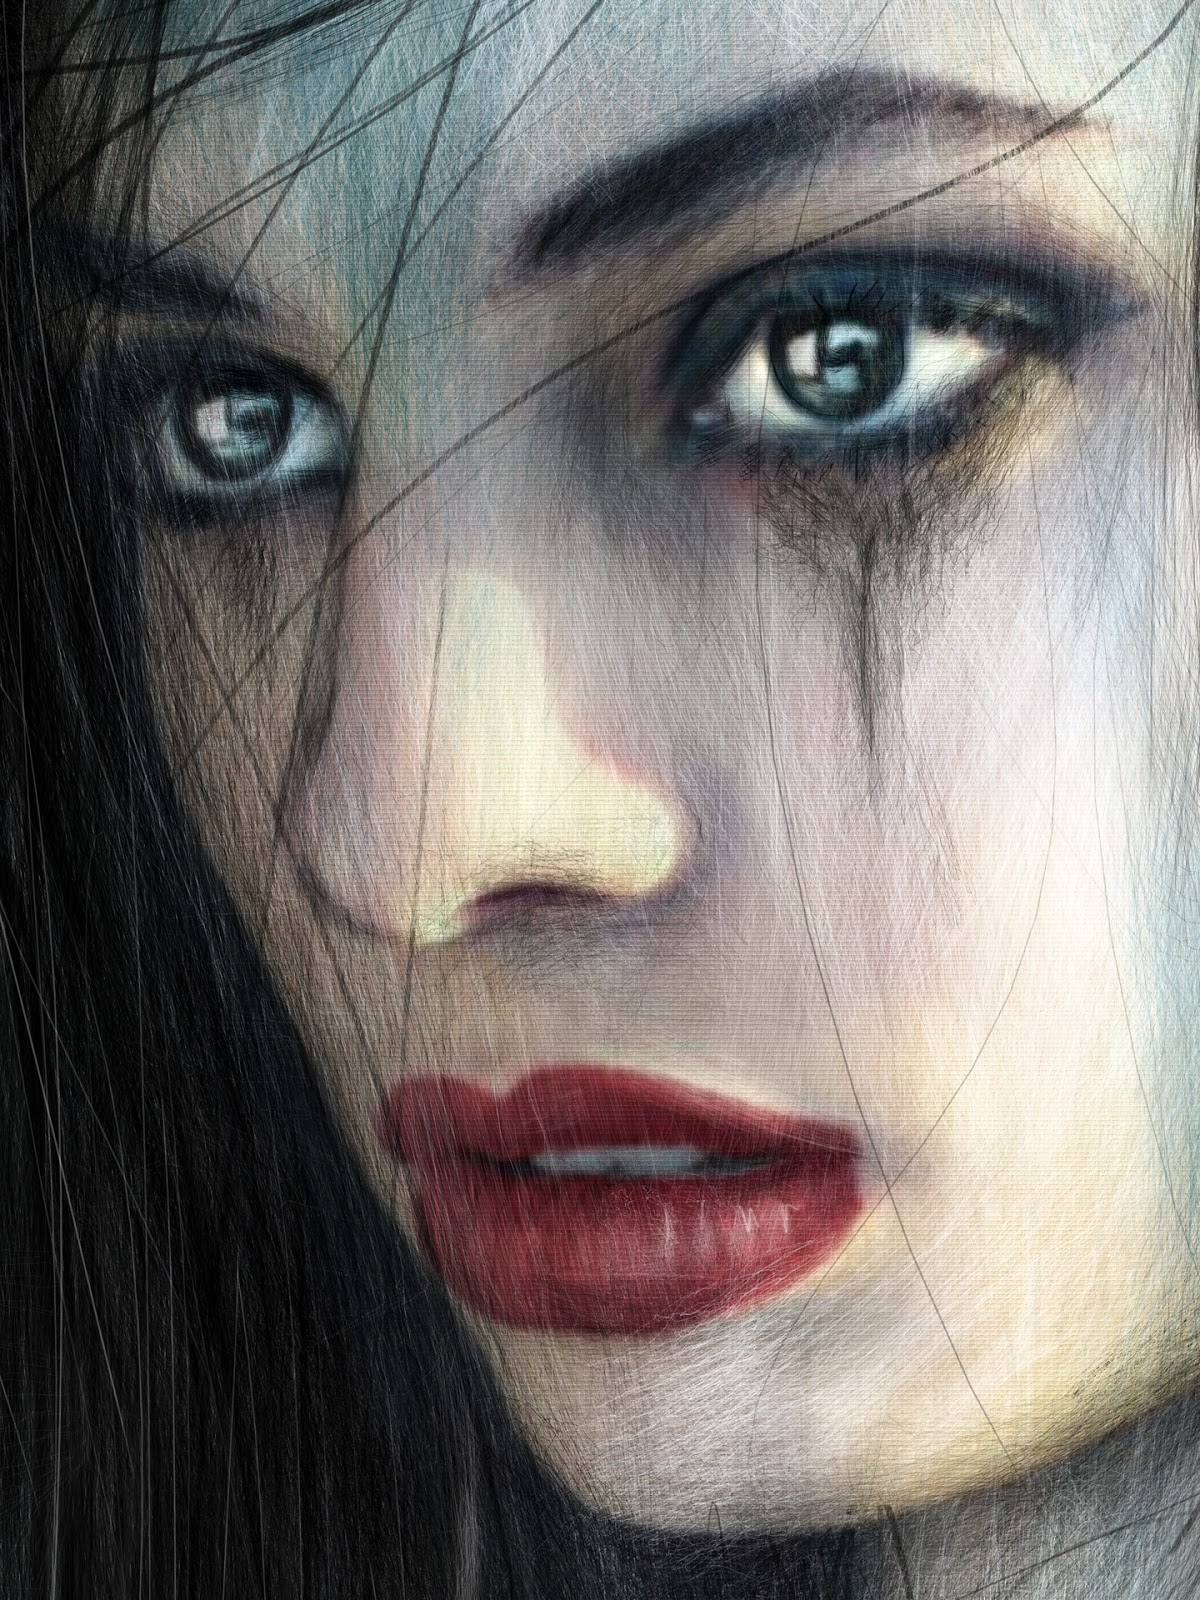 Gothic portrait of a beautiful woman